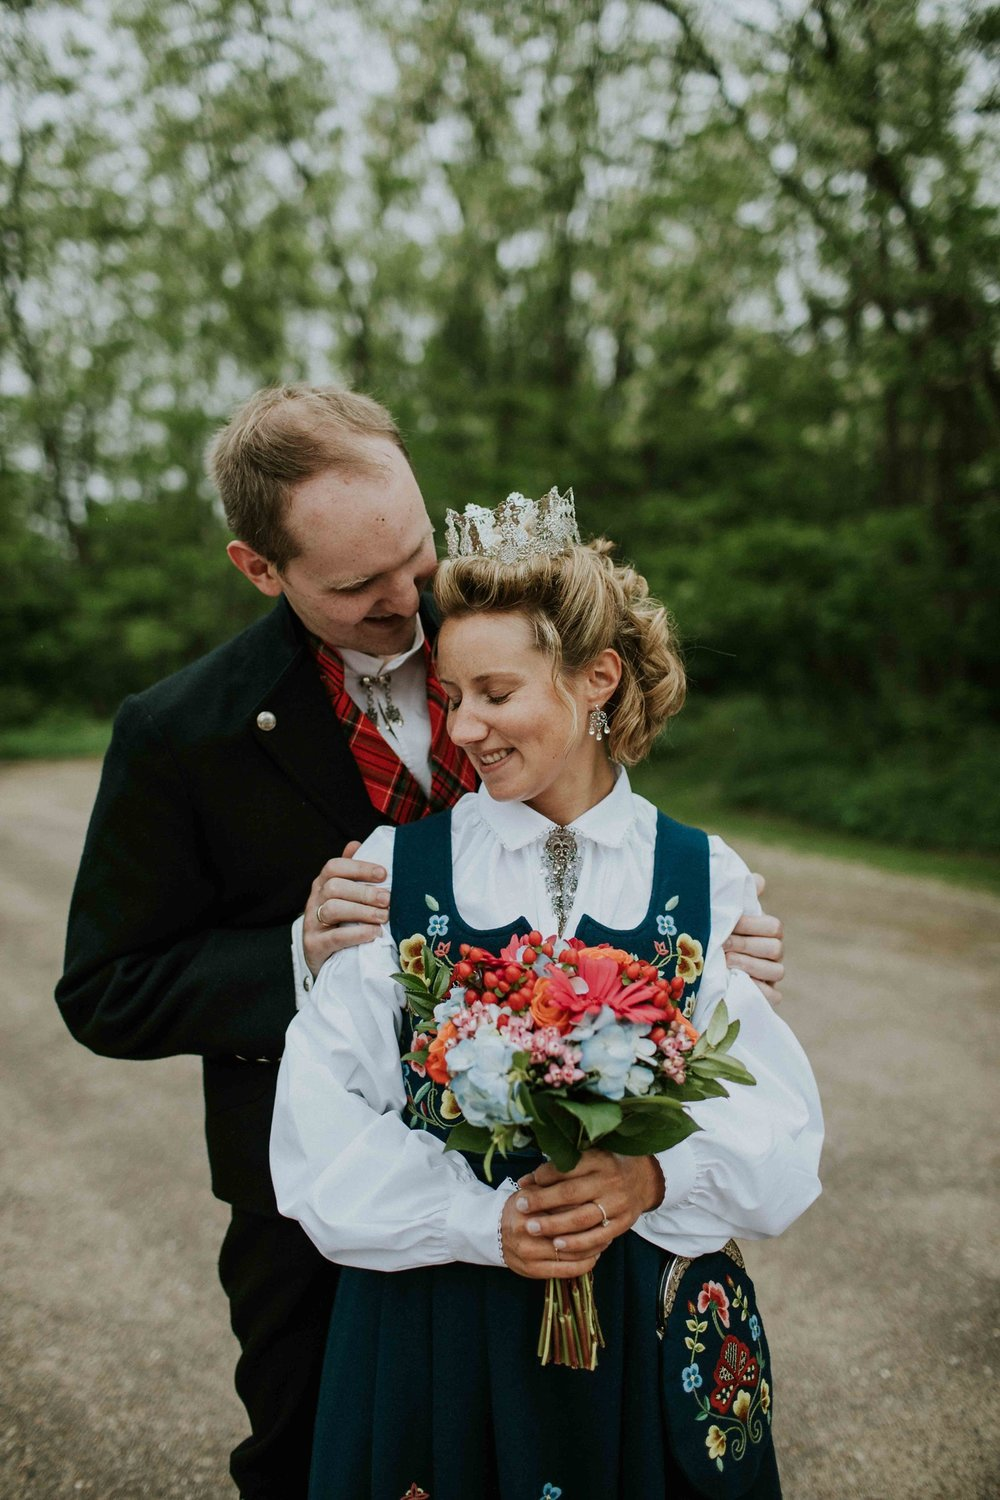 Norwegian Wedding Stevens Point Wisconsin Wedding Photographer Chloe Ann Photography_0023.jpg